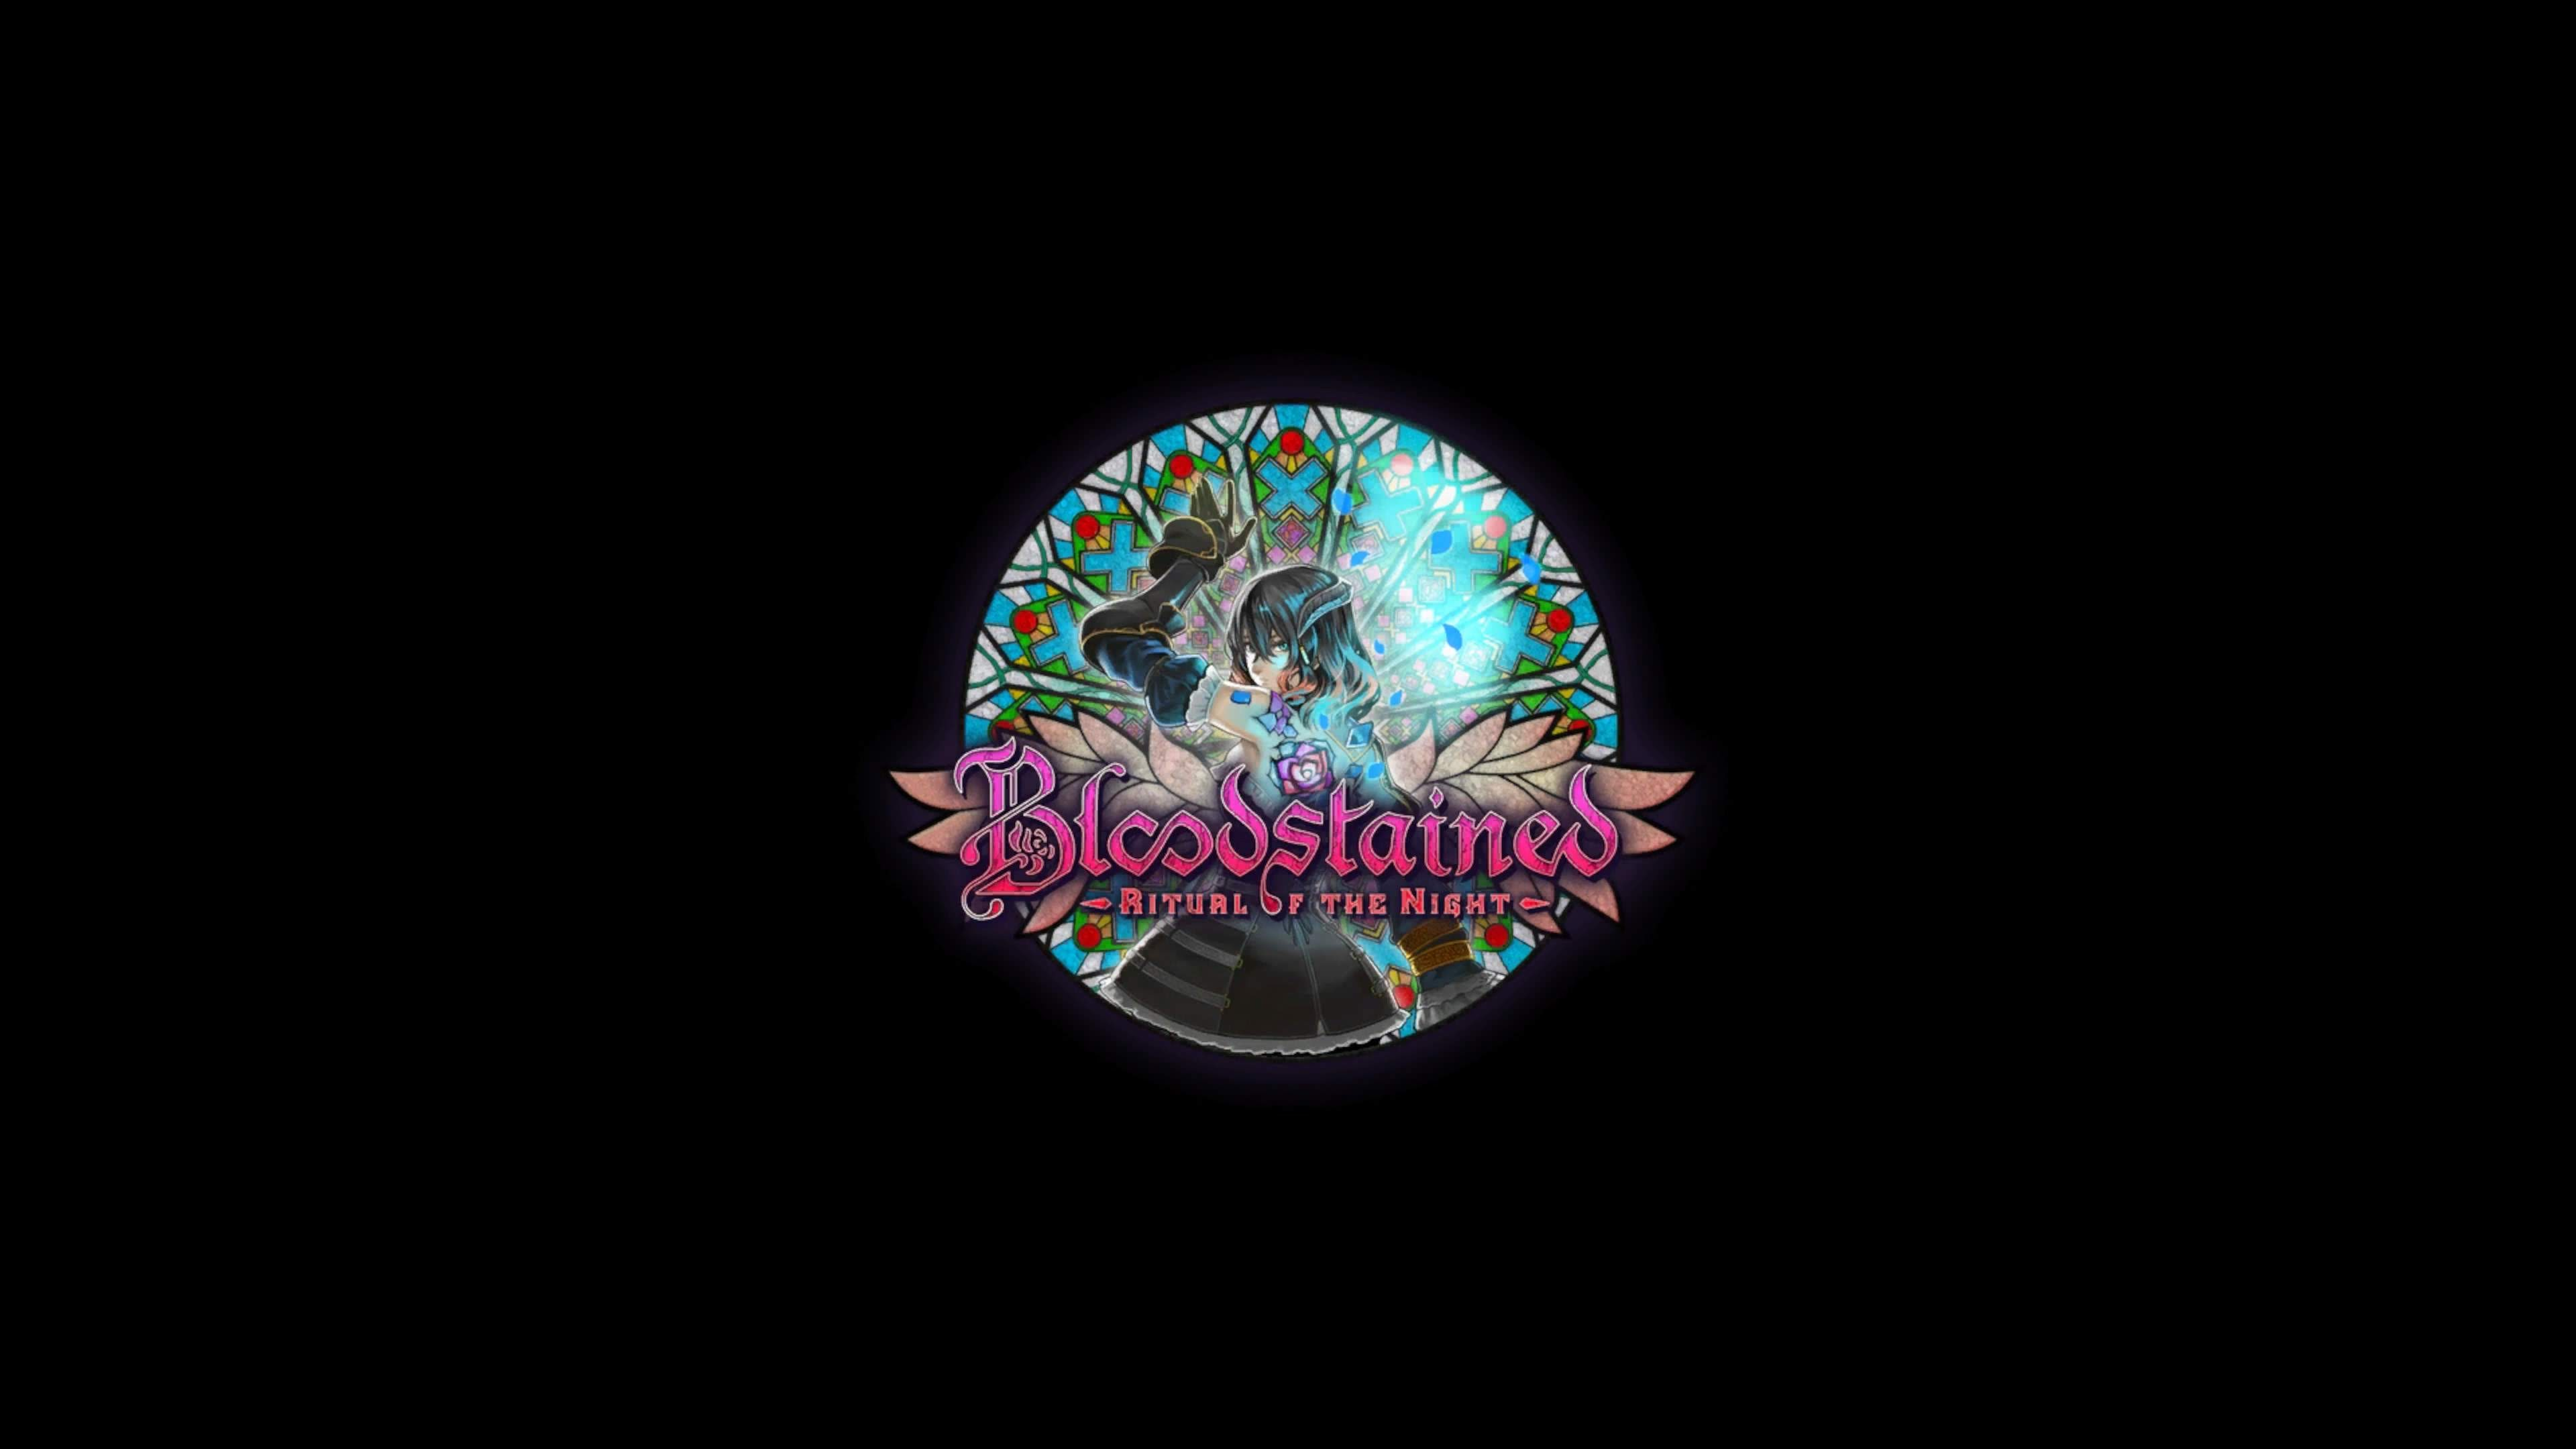 Steam - Bloodstained: Ritual of the Night その1 アーヴァント村 まで